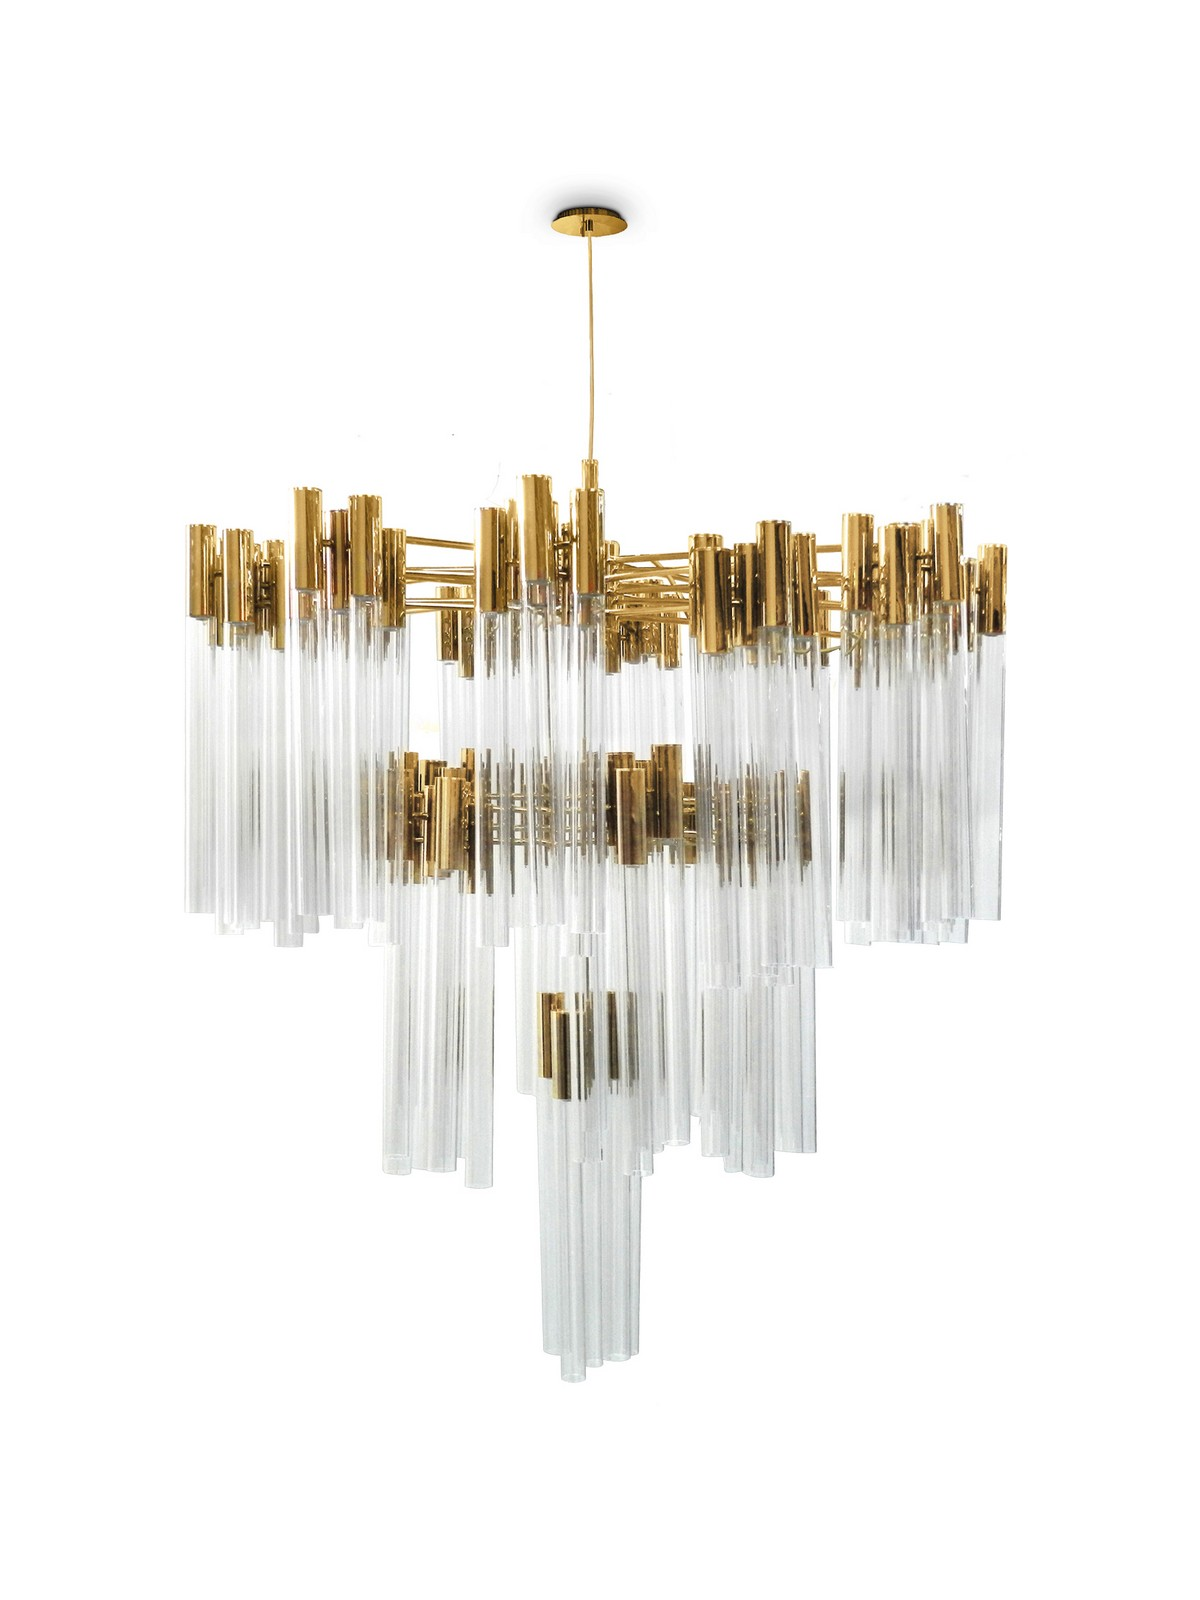 Exclusive Lighting Designs You Will Love exclusive lighting designs Exclusive Lighting Designs You Will Love burj chandelier2